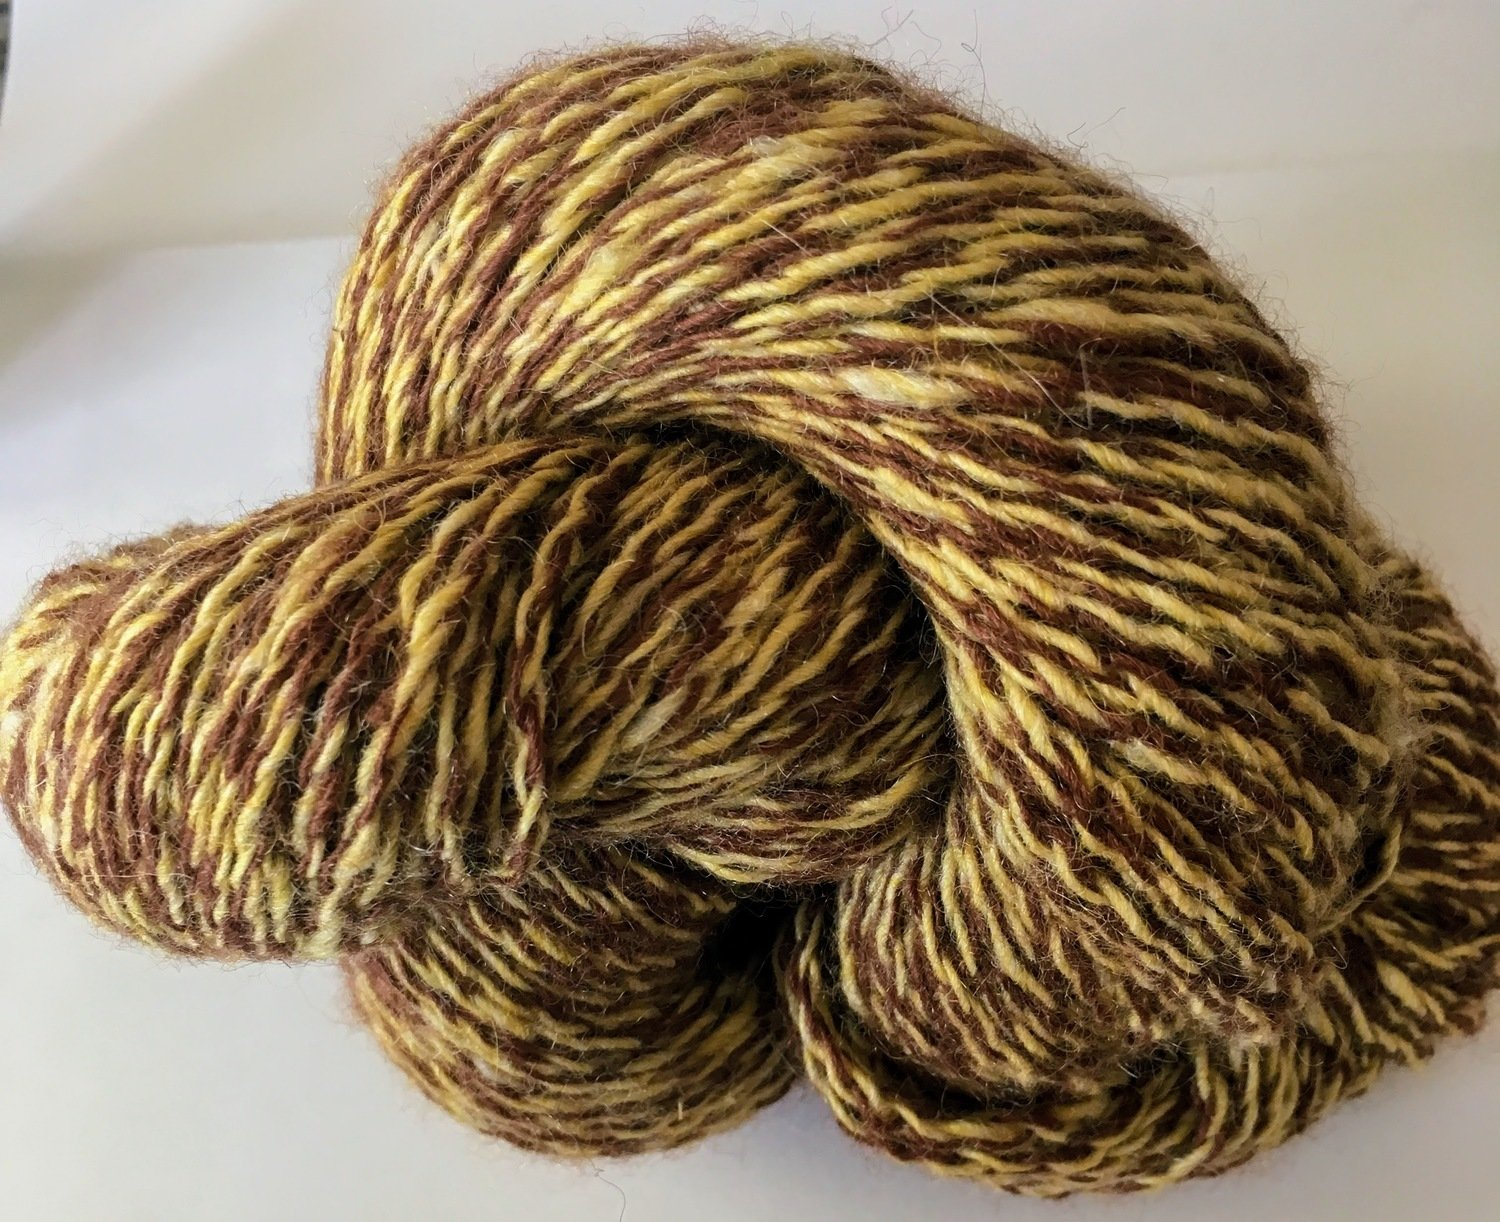 Breezy Hill Cottage-Milled, Hand-Dyed Yarn - Sandy Beach